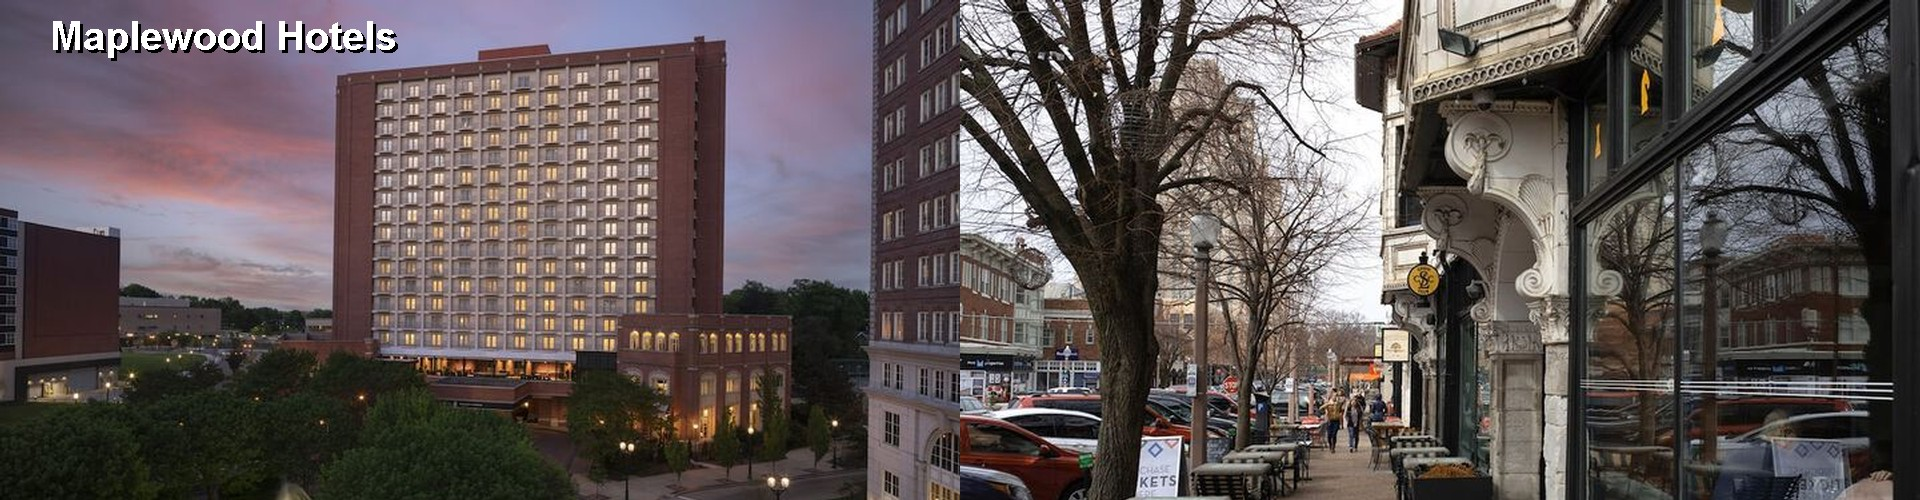 5 Best Hotels near Maplewood